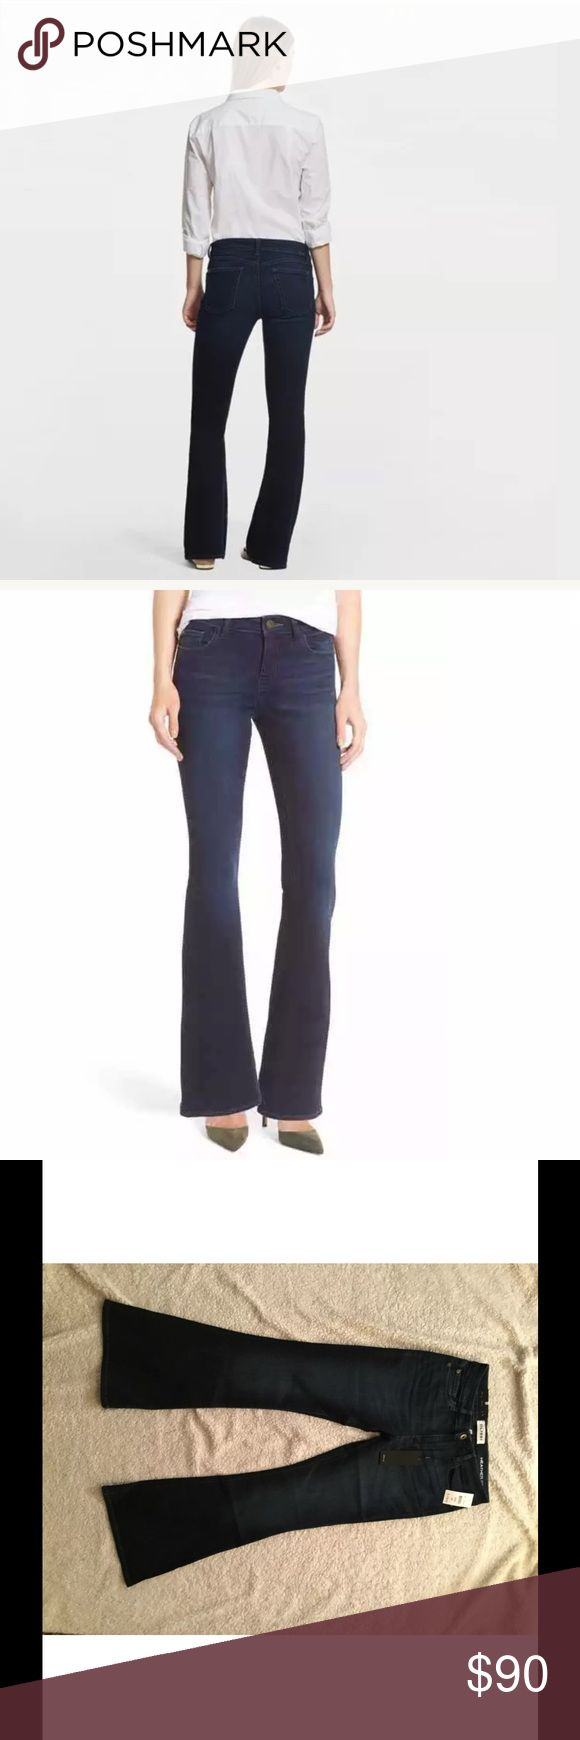 """NWT DL1961 Heather Petite Flare Jeans, Magnolia NWT DL1961 Heather Petite Flare Jeans, Magnolia Wash, Size 29, Retail $178 Specially proportioned to fit a petite frame, stretch-denim jeans are svelte through the hips and thighs before kicking out into an ultra-flattering flare silhouette. 30"""" inseam; 22"""" leg opening; 9 1/2"""" front rise  93% cotton, 6% elasterell-p, 1% elastane Machine wash cold, dry flat  Rise: 8.5"""" Waist: 16"""" Inseam: 28"""" Leg opening: 5""""  Pet and smoke-free home. DL1961 Jeans…"""